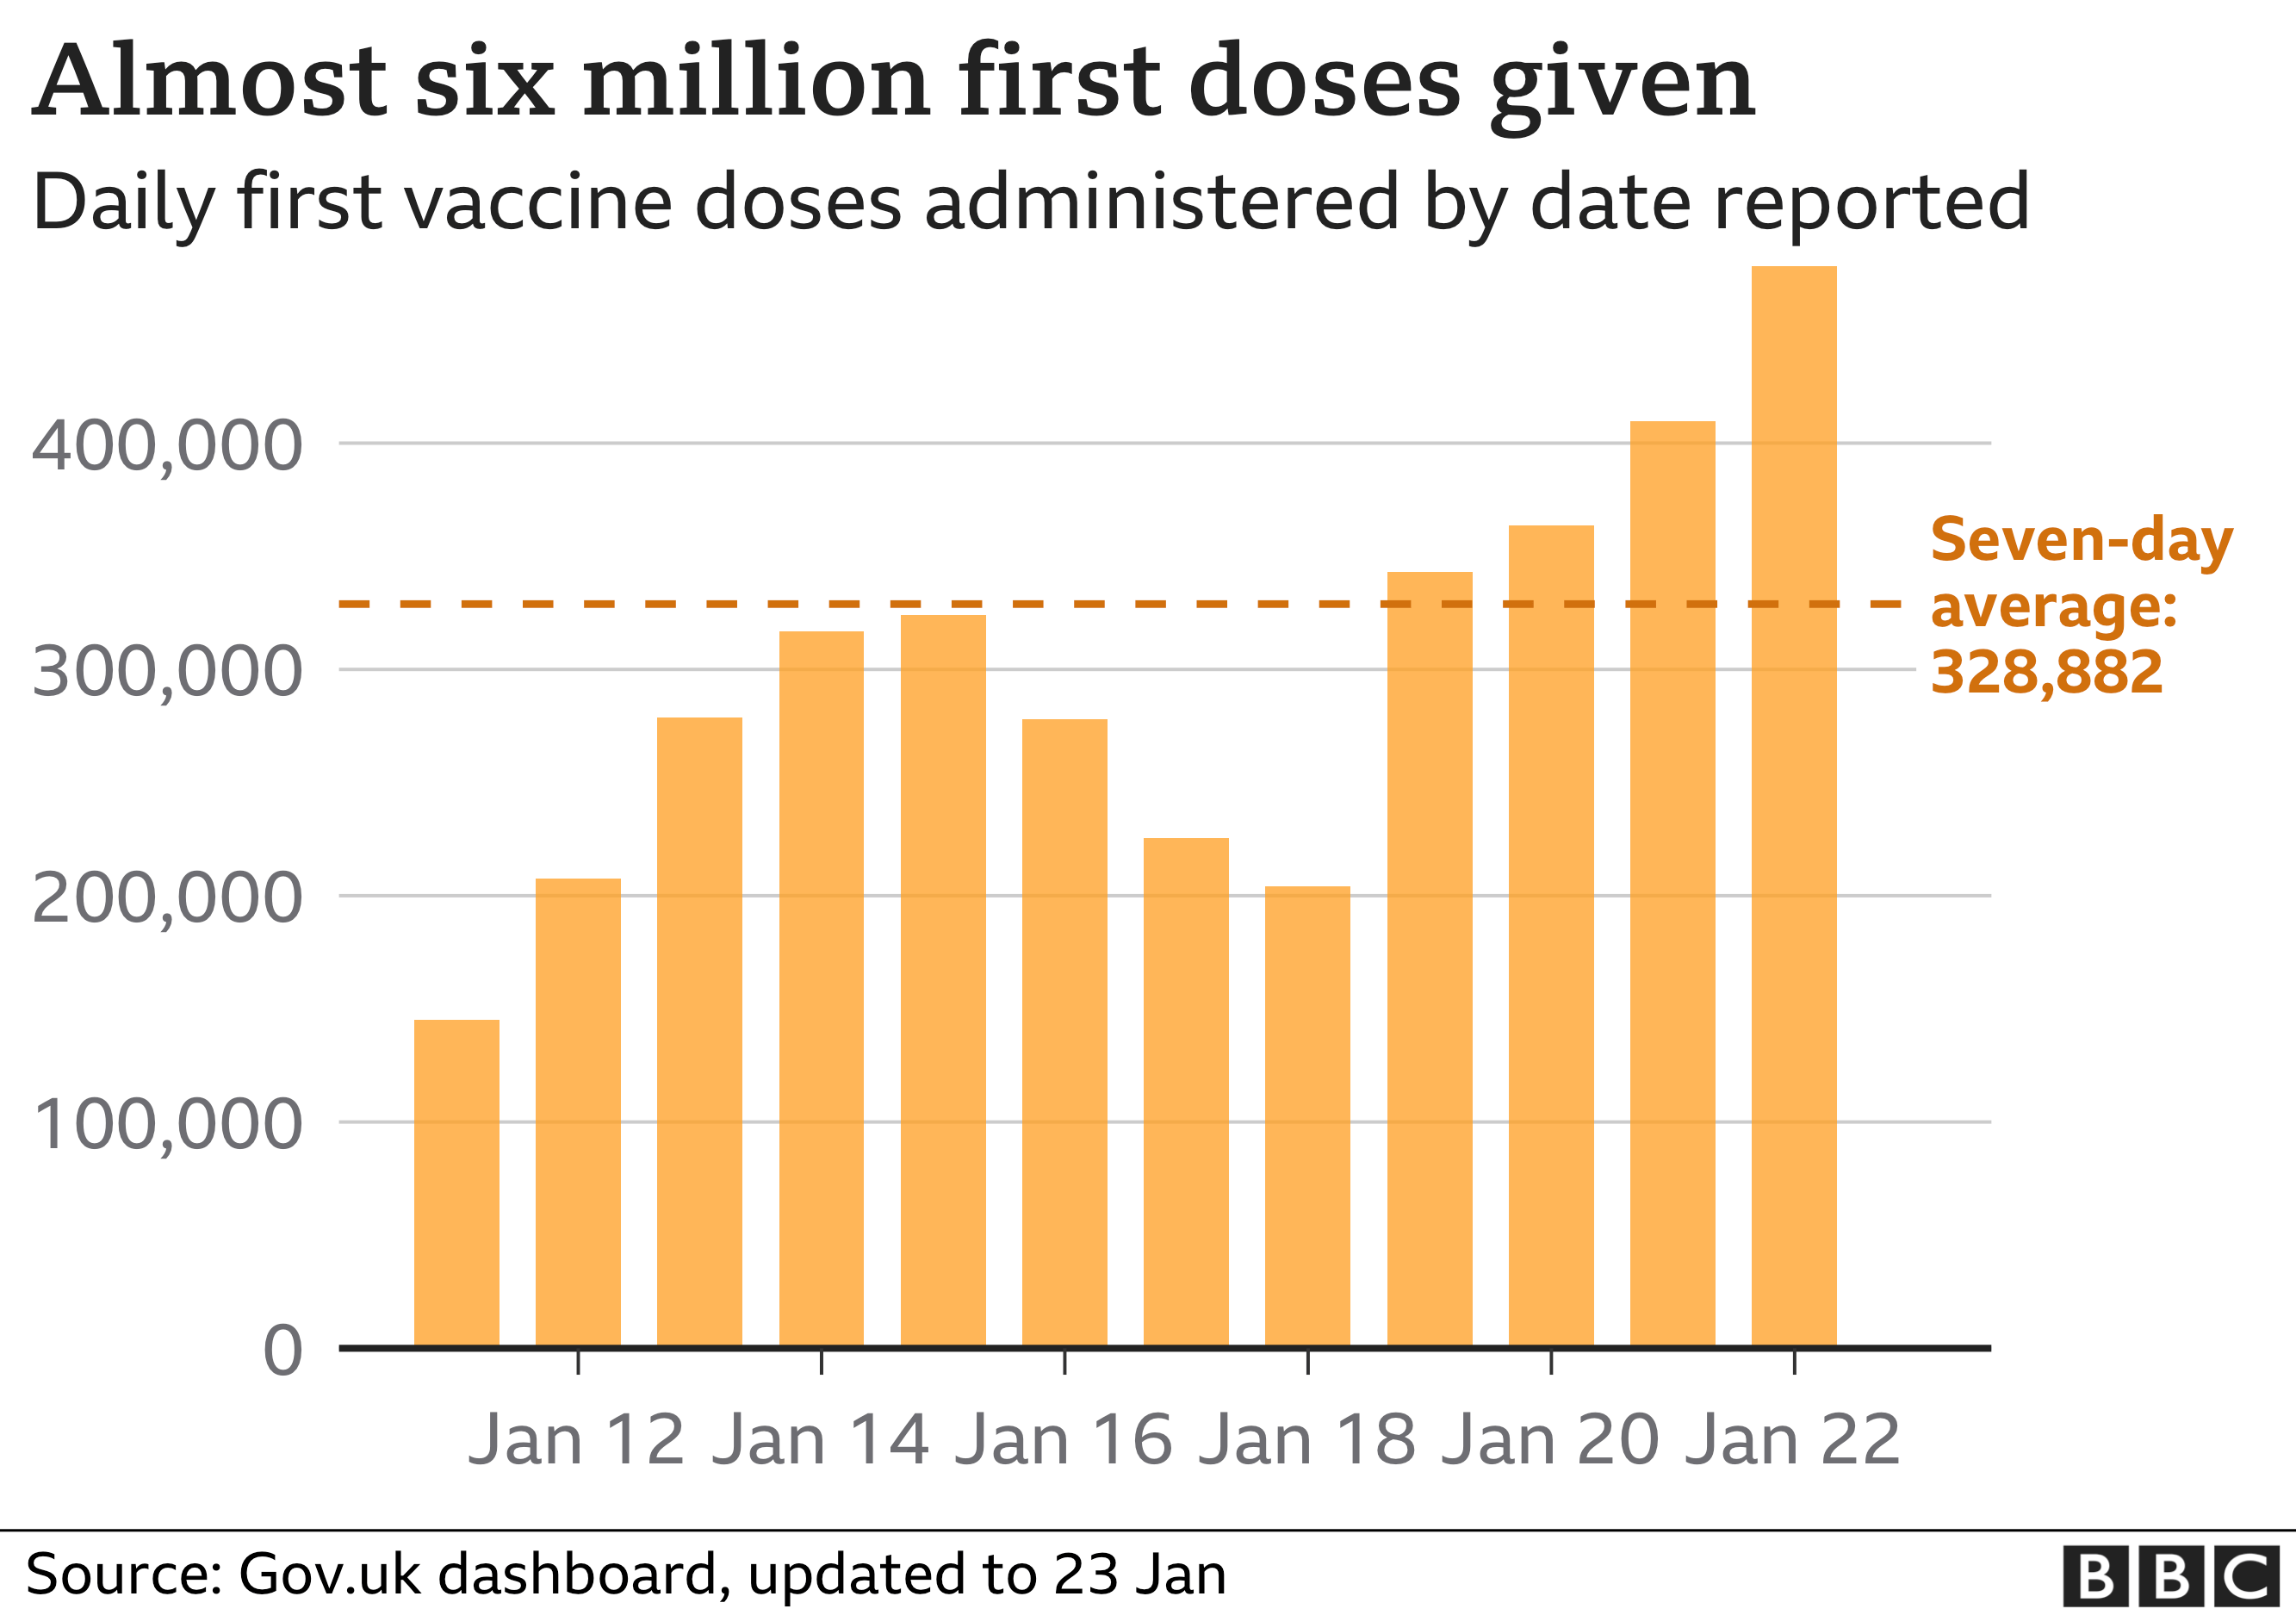 Chart shows daily number of first dose vaccines given - so far almost six million in total